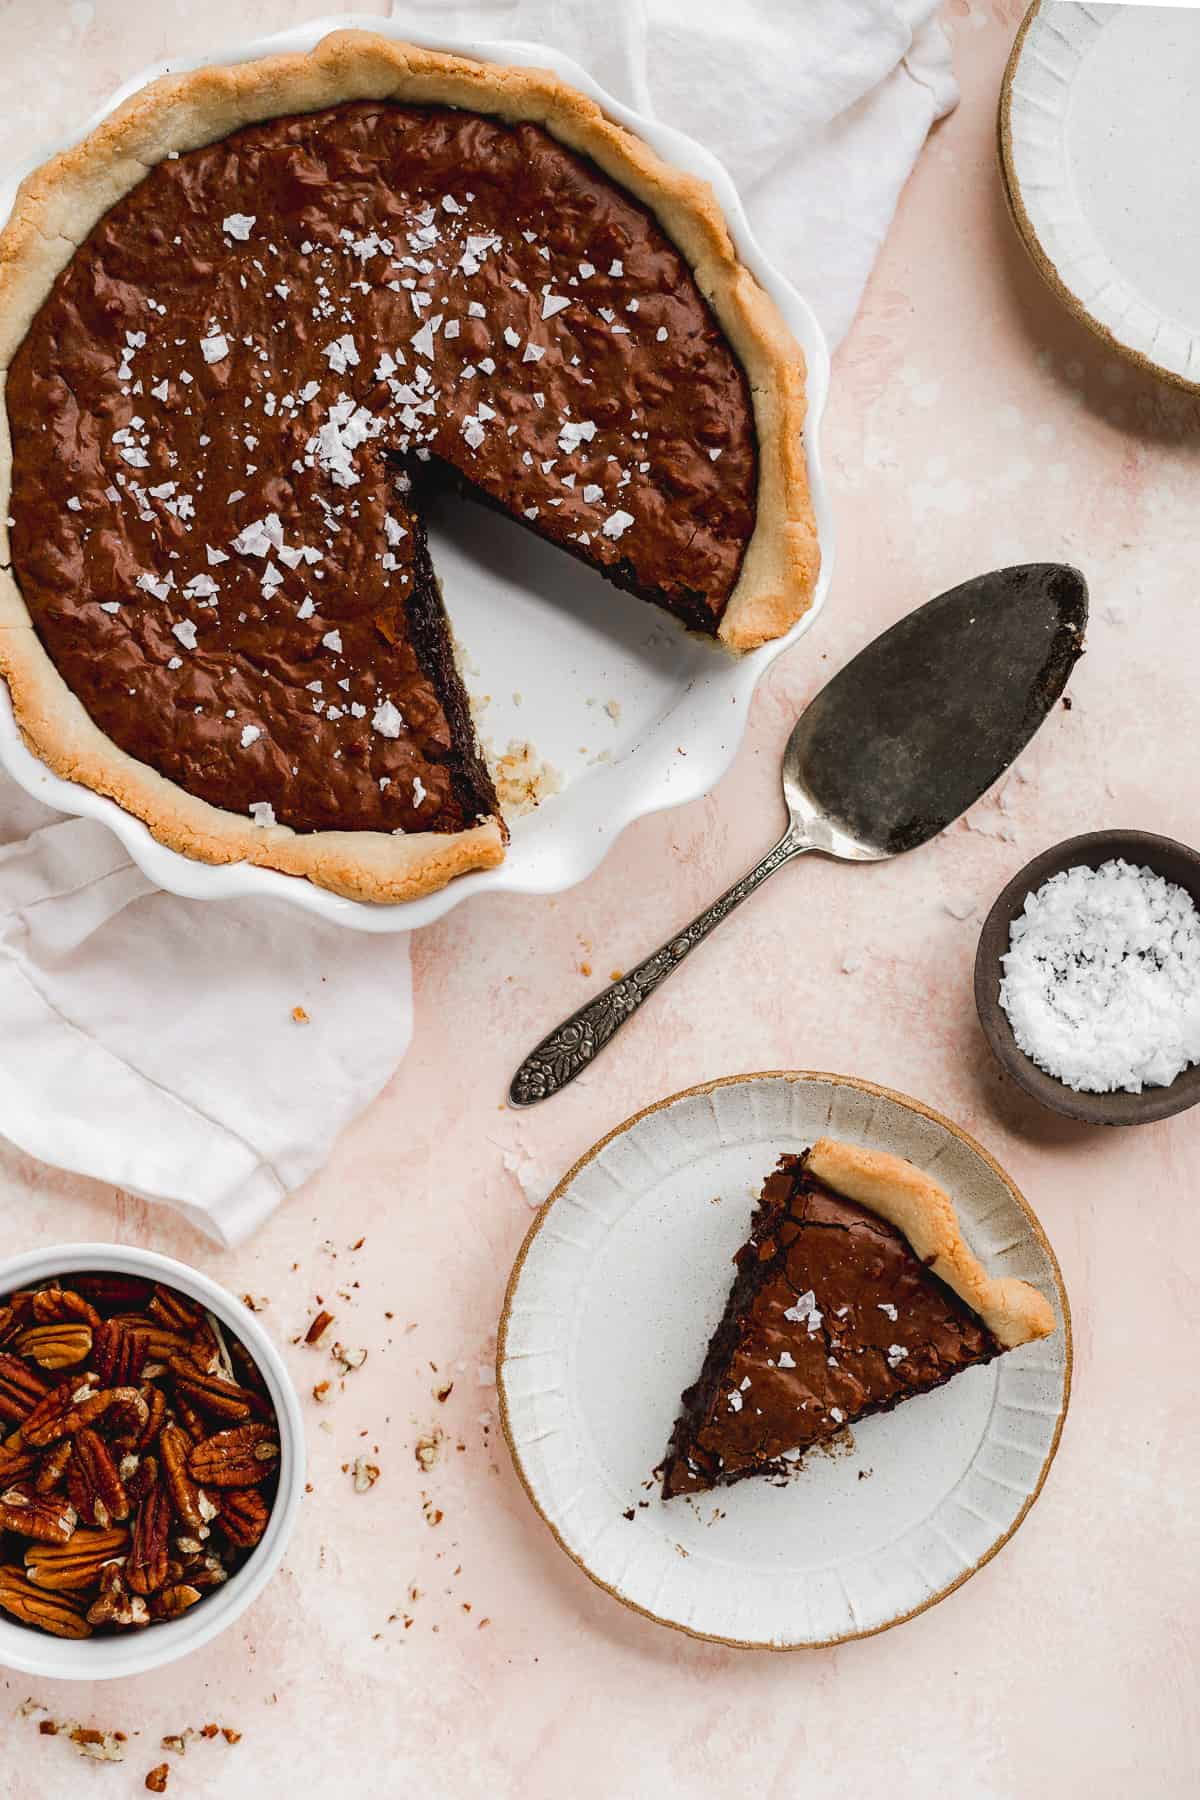 Overhead photo of freshly baked Dark Chocolate Sea Salt Brownie Pecan Pie with one slice missing.  Sliced piece is sitting on a small grey plate nearby.  A pie server is sitting nearby.